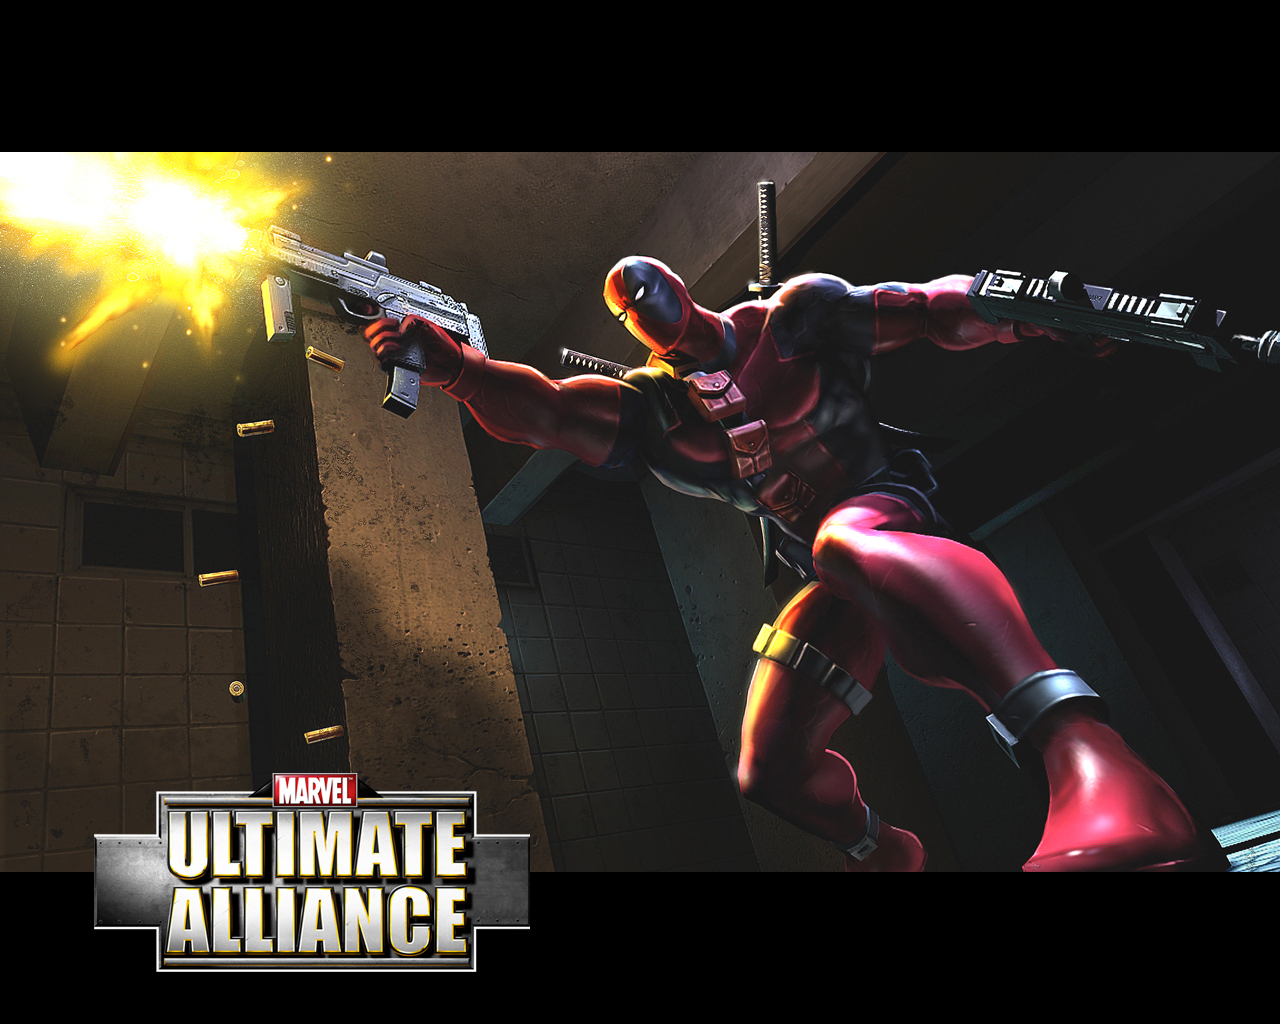 marvel ultimate alliance images mua deadpool hd wallpaper